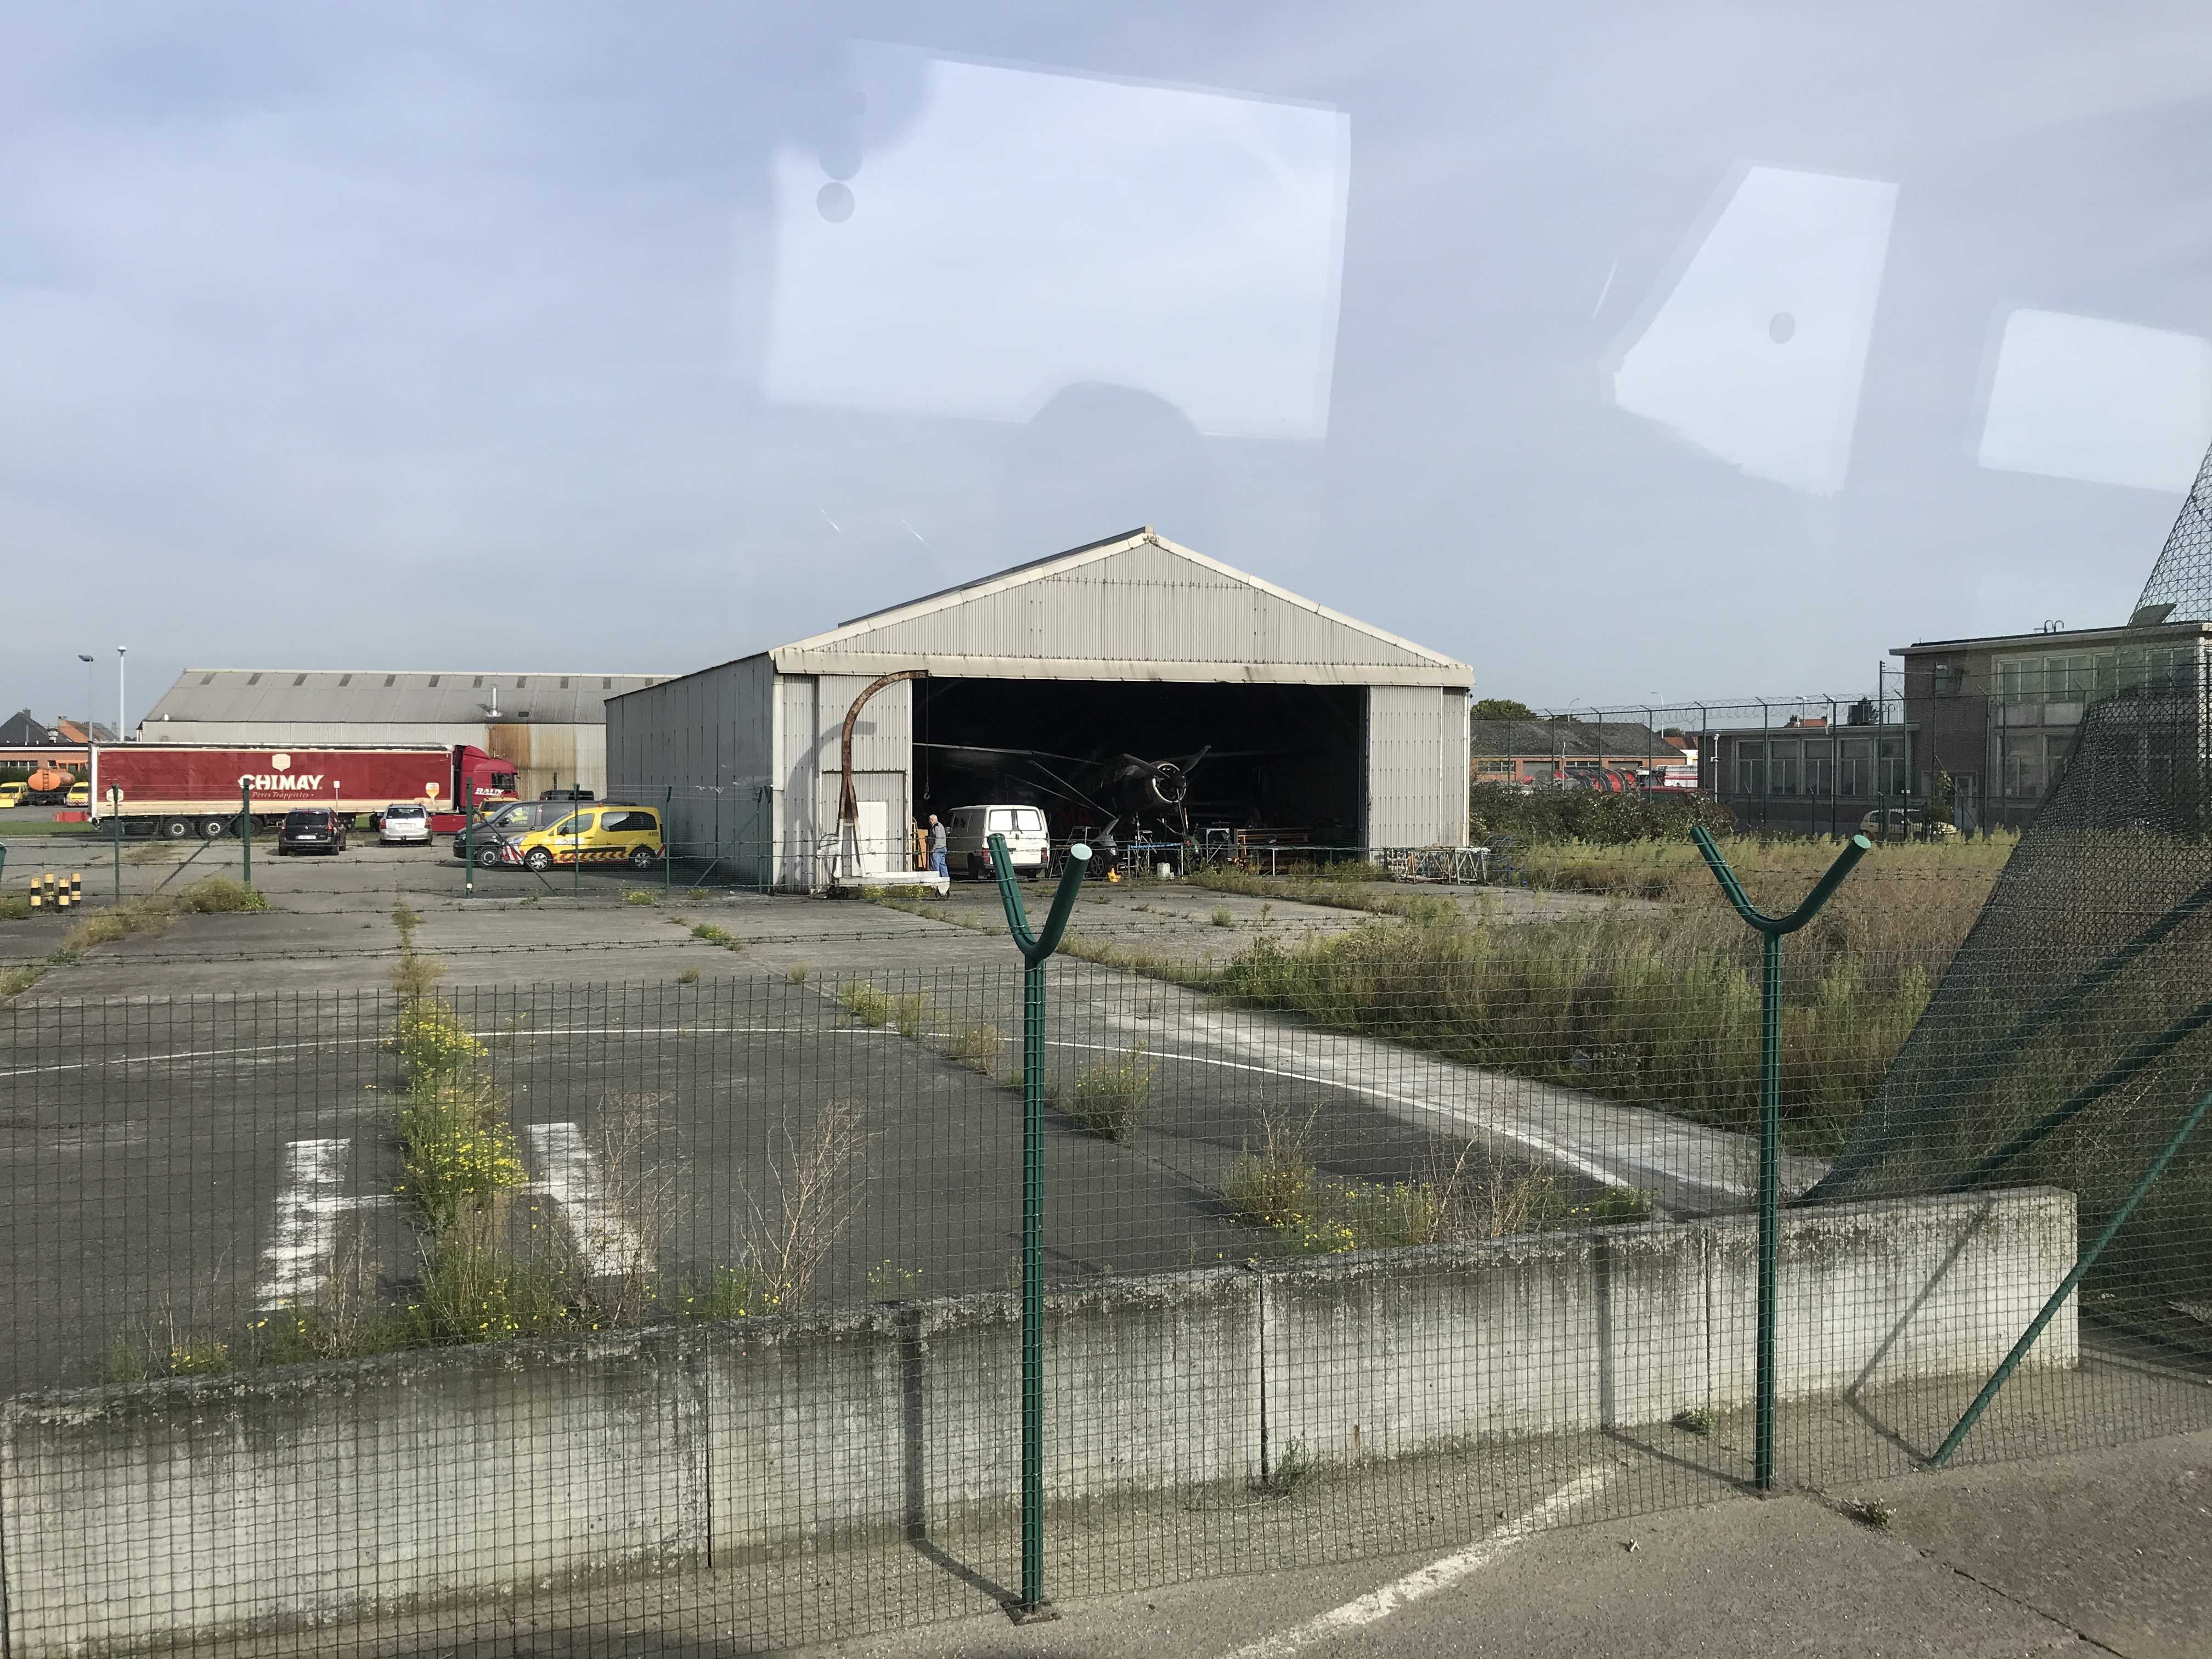 Old hangar at Brussels Airport